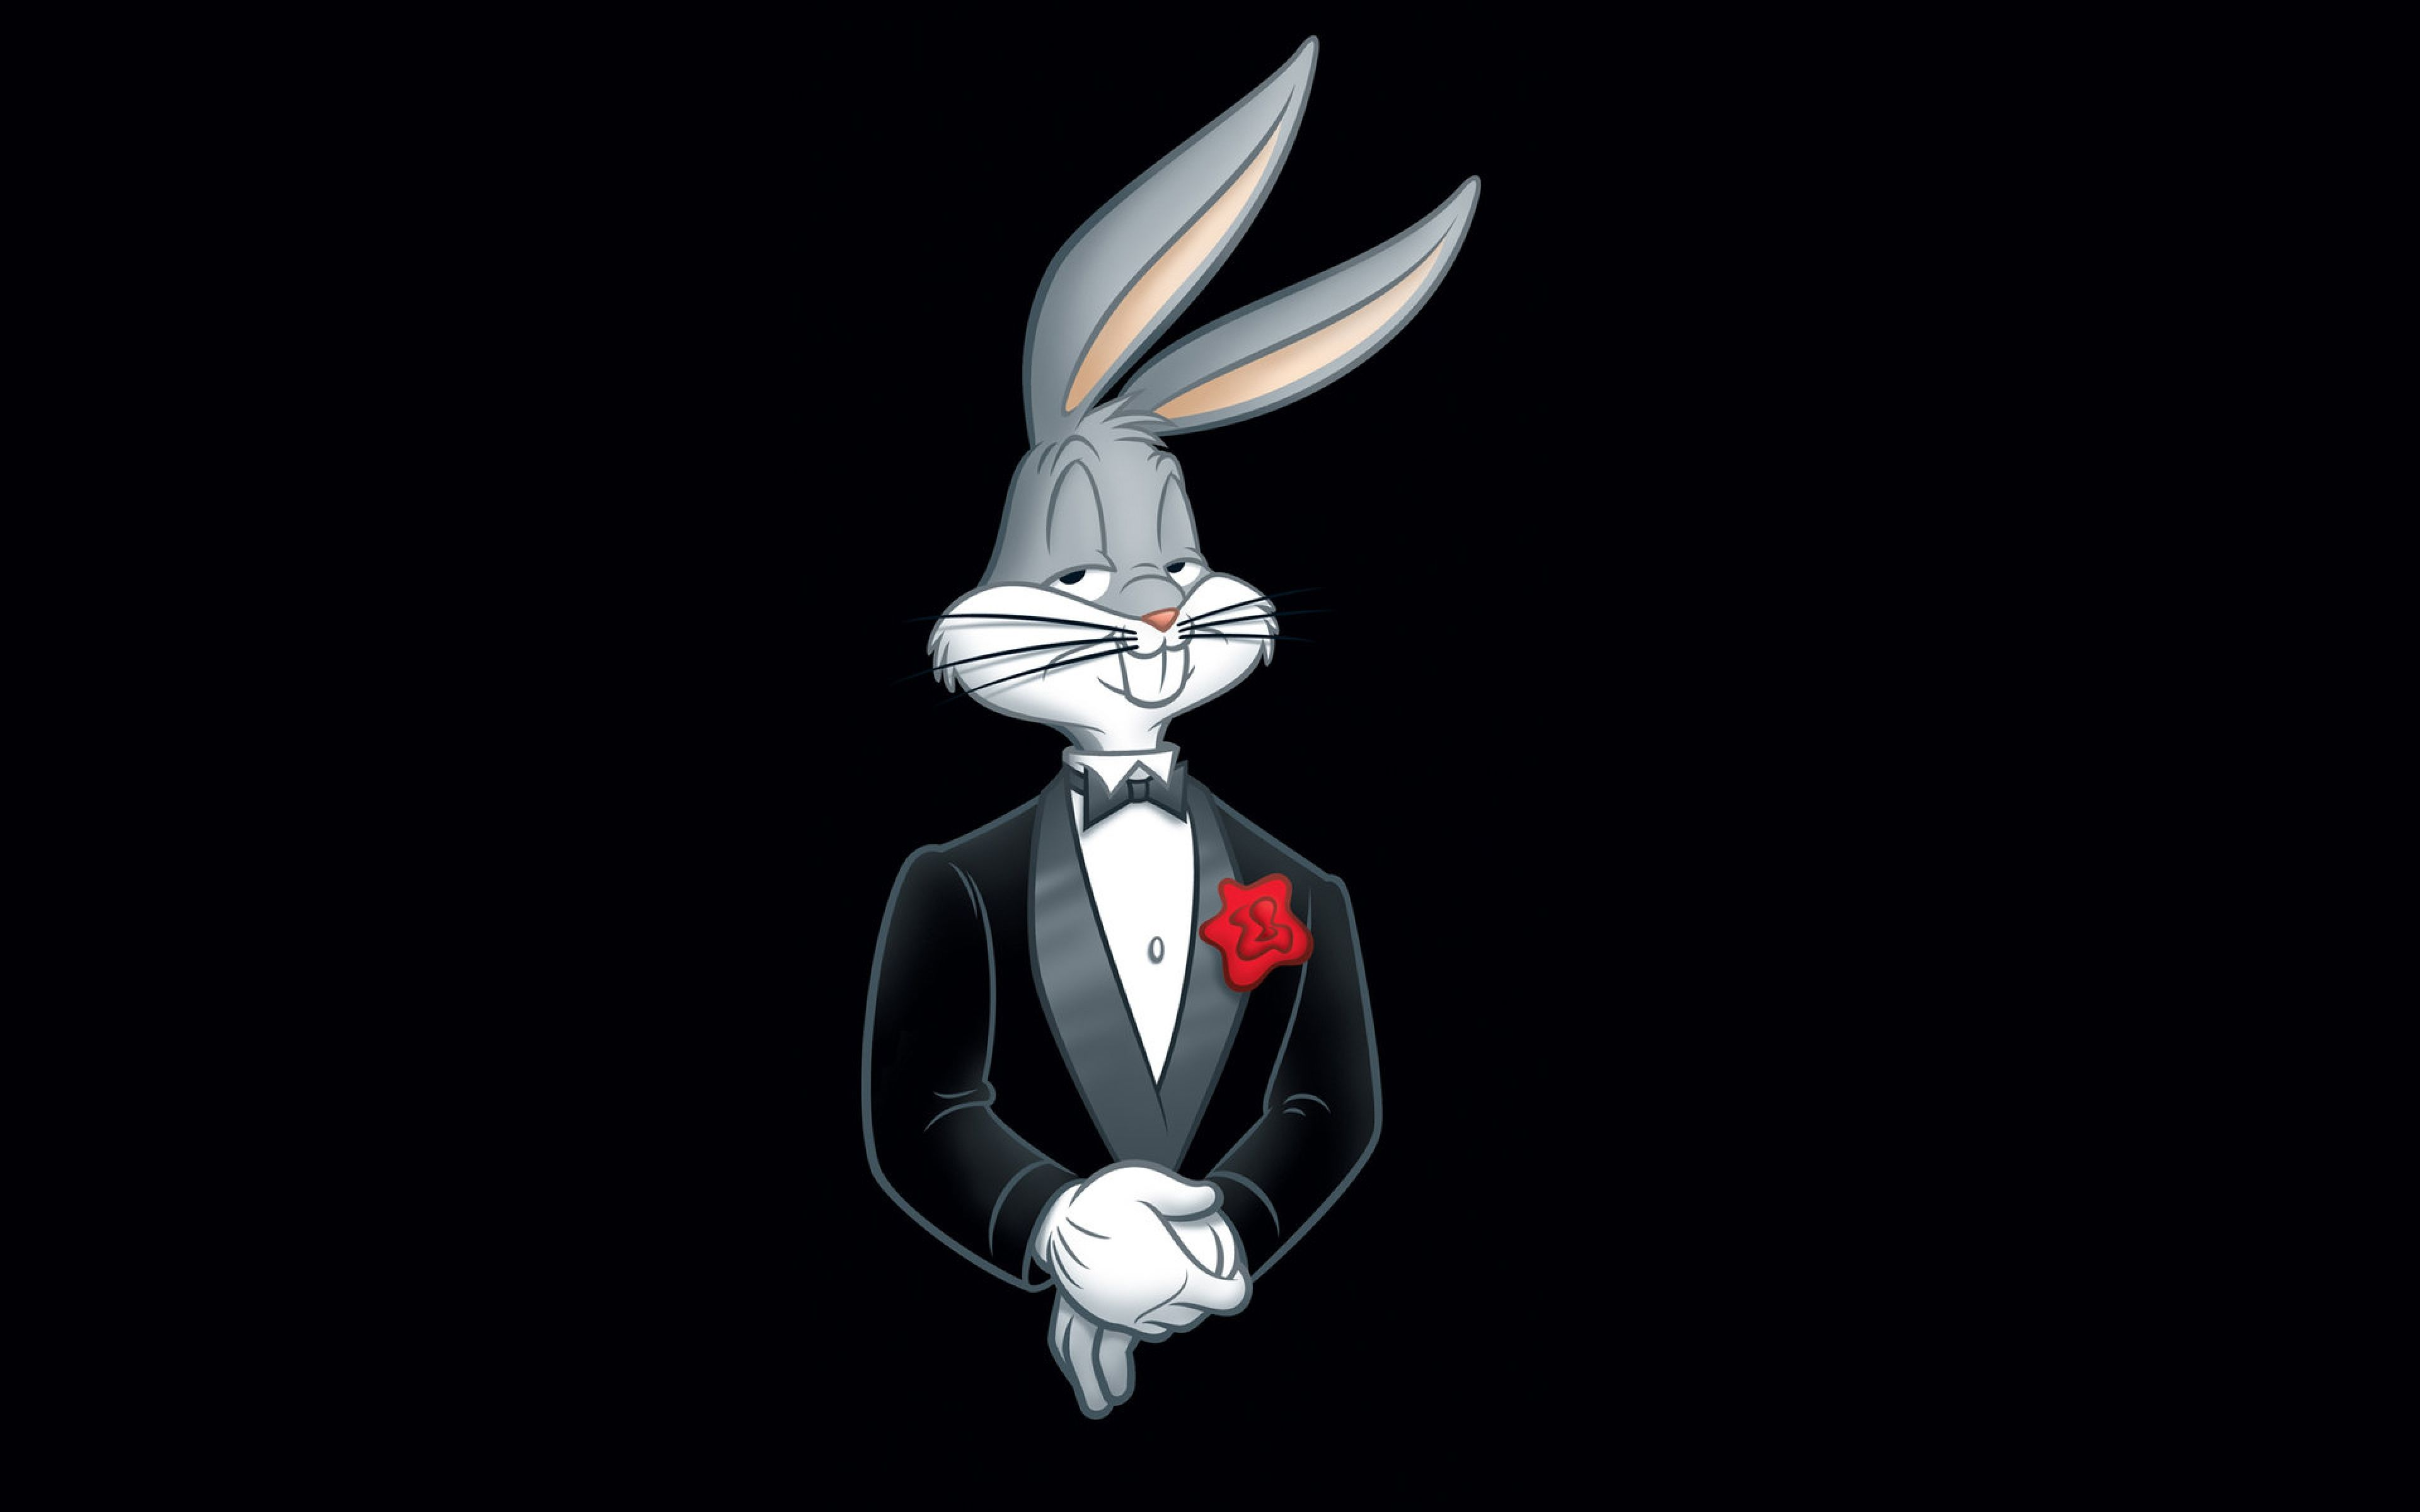 Cool Bugs Bunny Wallpapers Top Free Cool Bugs Bunny Backgrounds